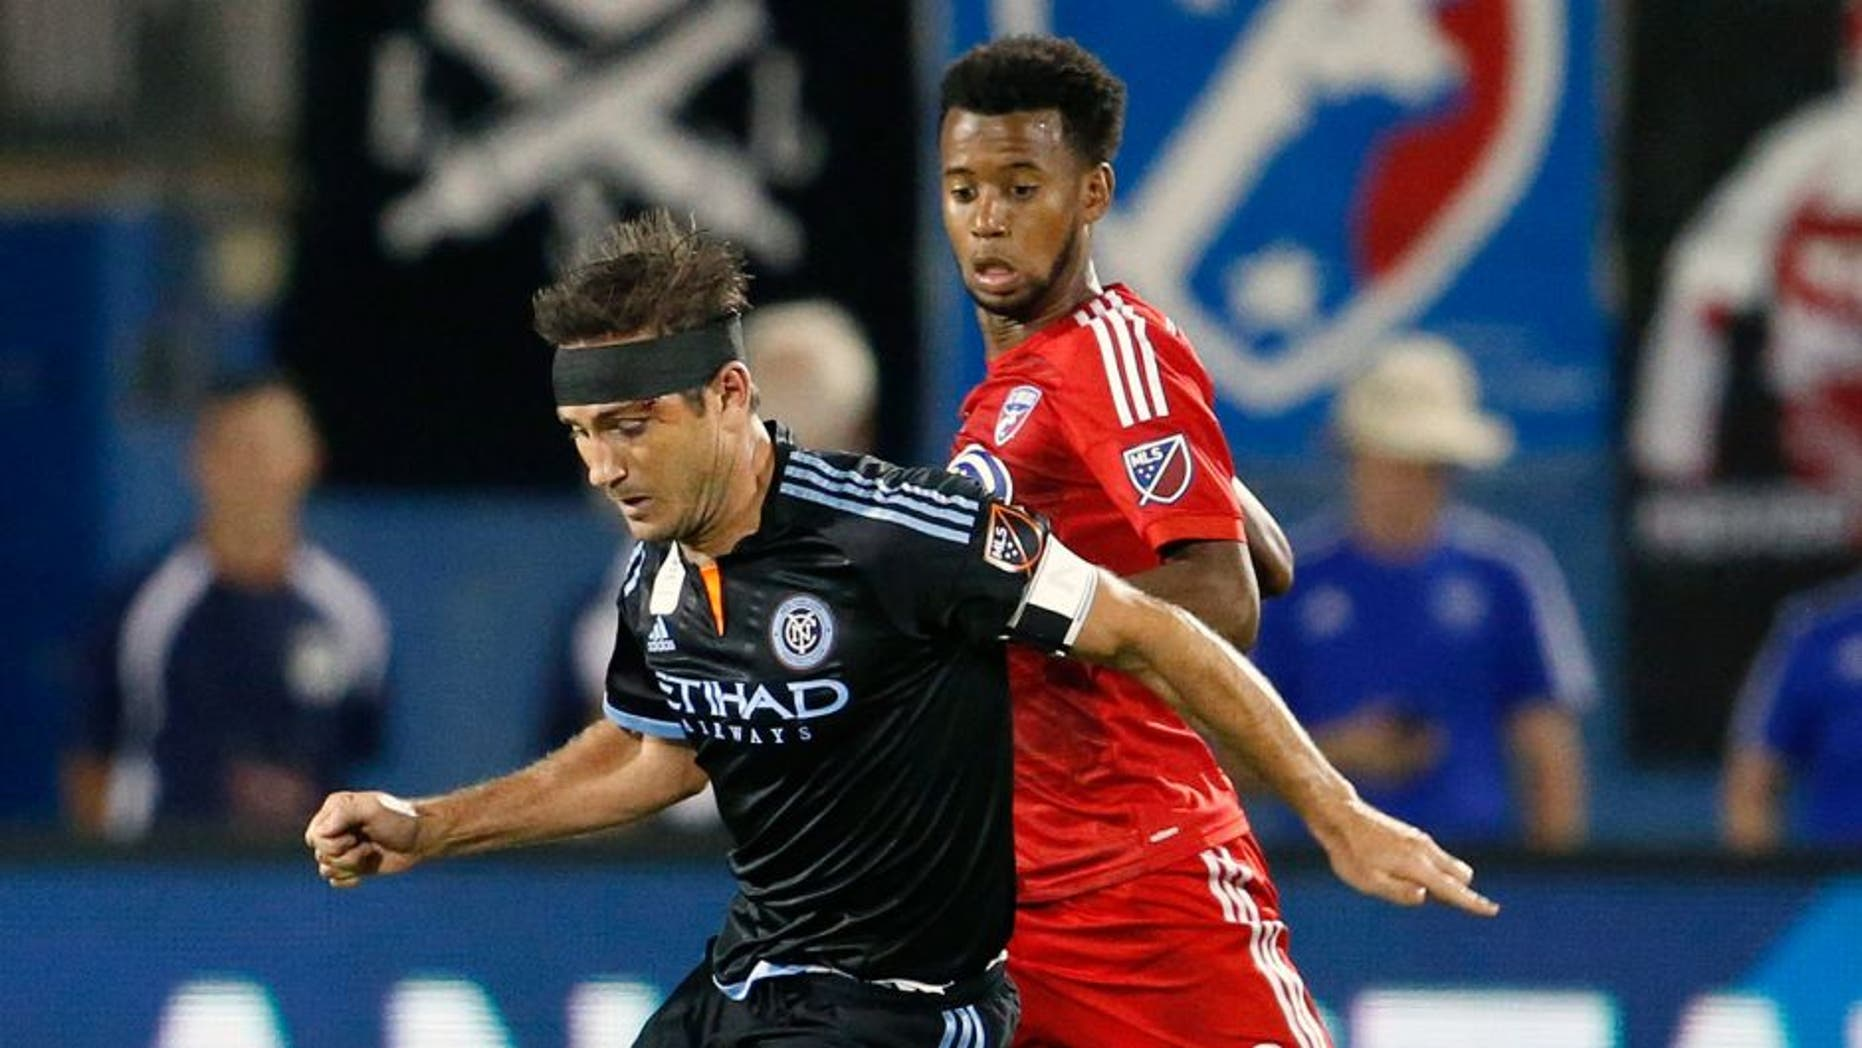 Sep 12, 2015; Dallas, TX, USA; New York City FC midfielder Frank Lampard (8) controls the ball against FC Dallas midfielder Kellyn Acosta (23) in the second half at Toyota Stadium. Dallas beat New York 2-1. Mandatory Credit: Matthew Emmons-USA TODAY Sports